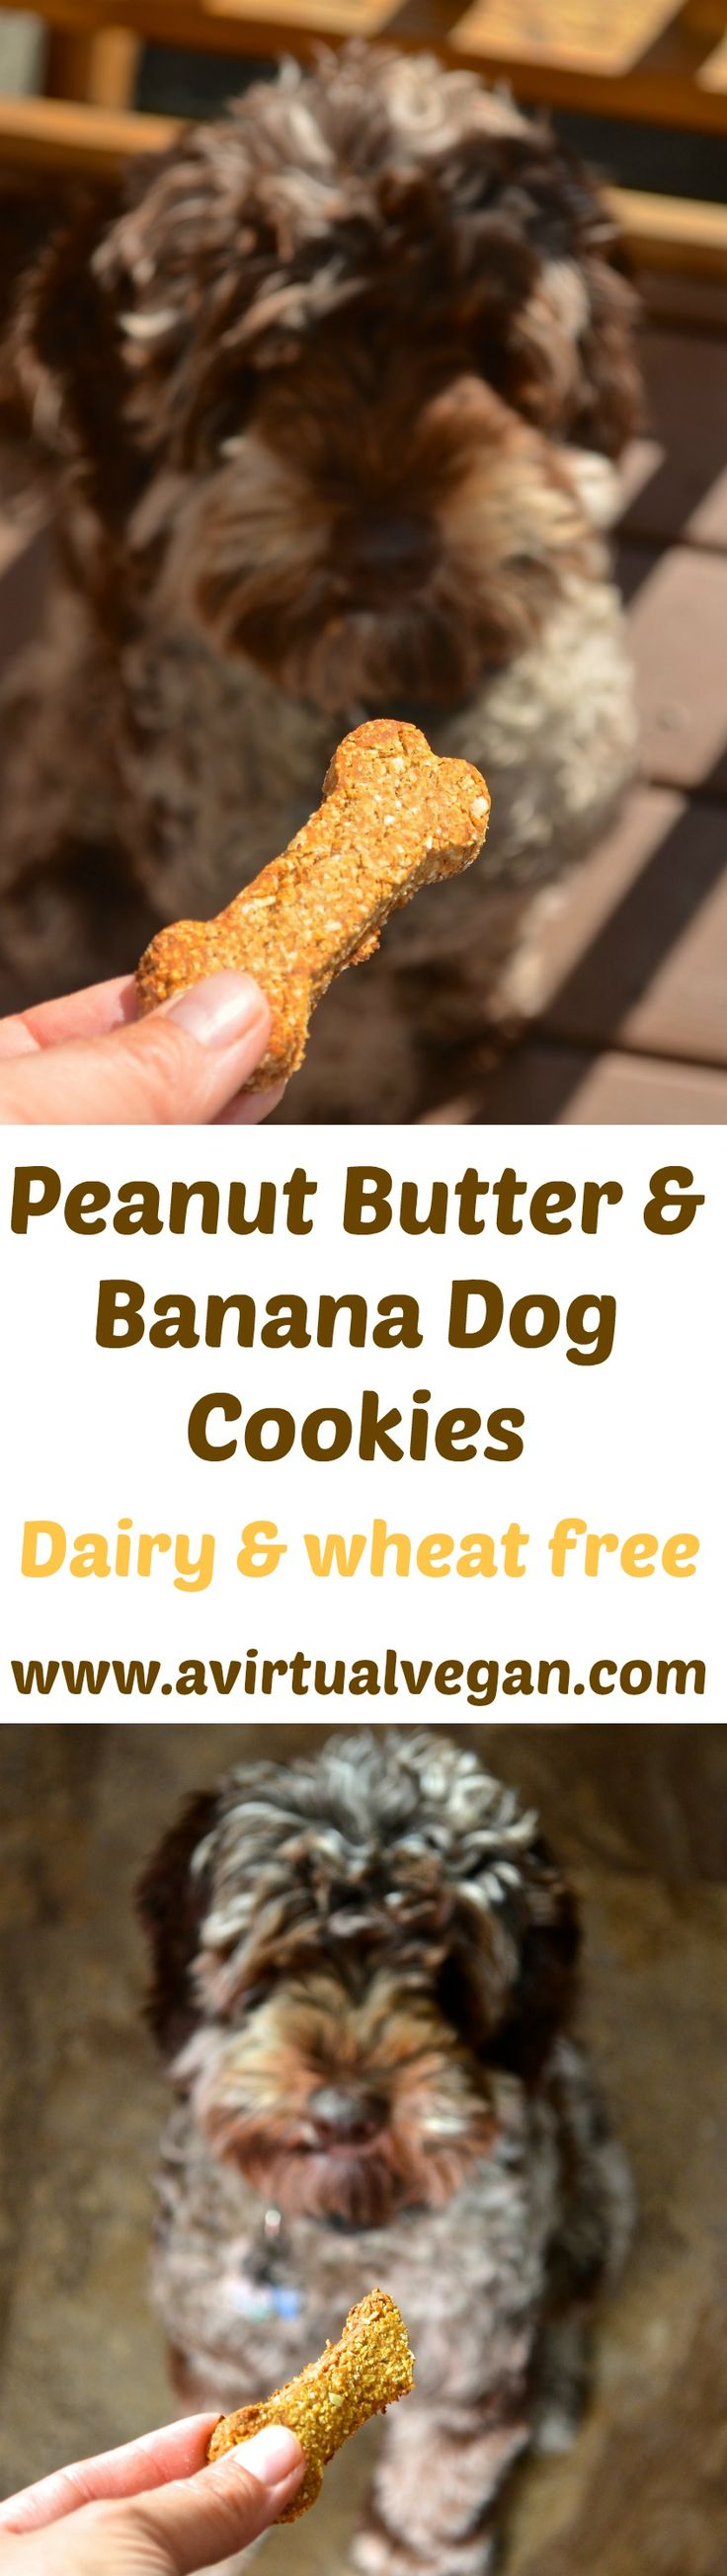 Get some tails wagging with these healthy 3 ingredient dog cookies. Full of peanut buttery goodness and officially taste tested & approved by Chester! Just 3 ingredients & dairy & wheat free!